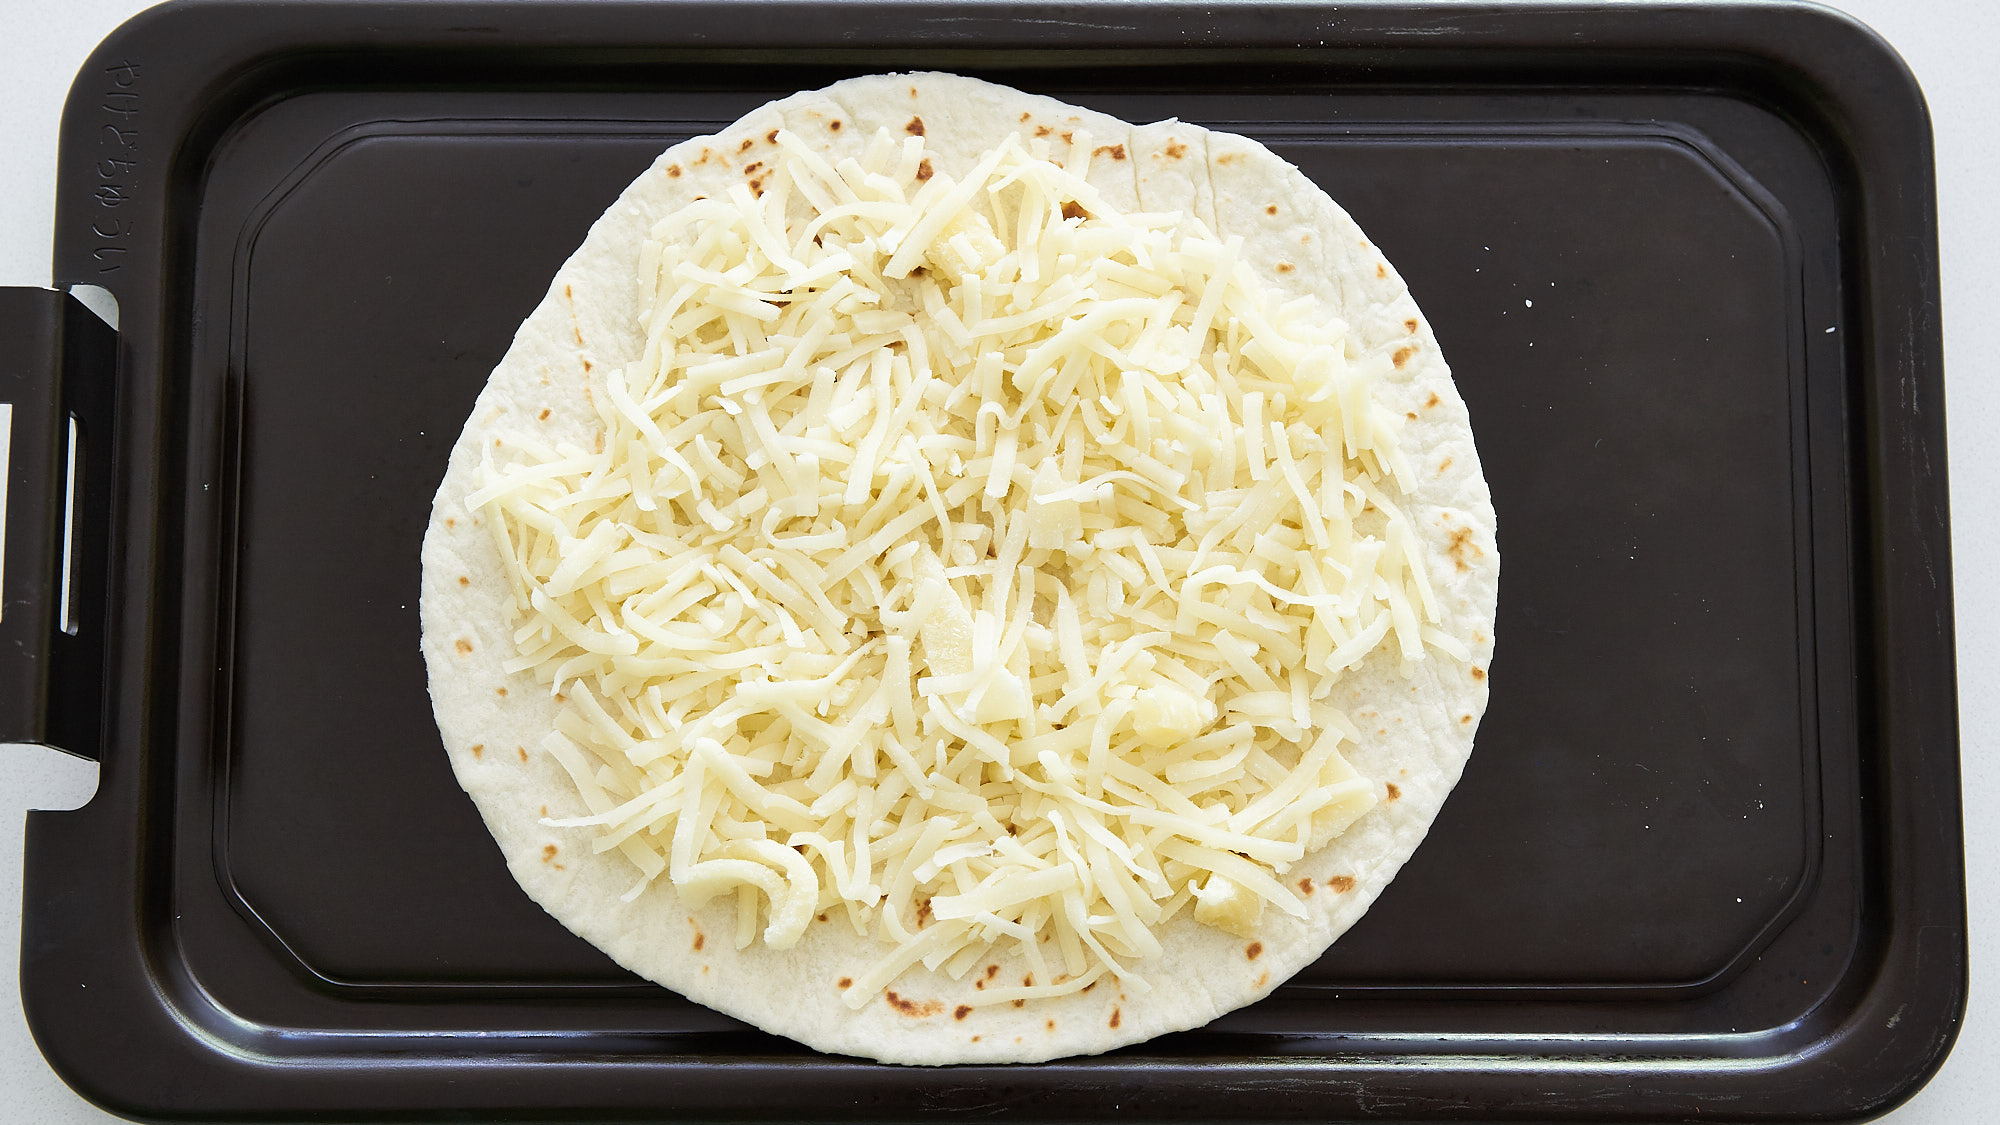 Pizzadilla's start out like a quesadilla with cheese on a tortilla.